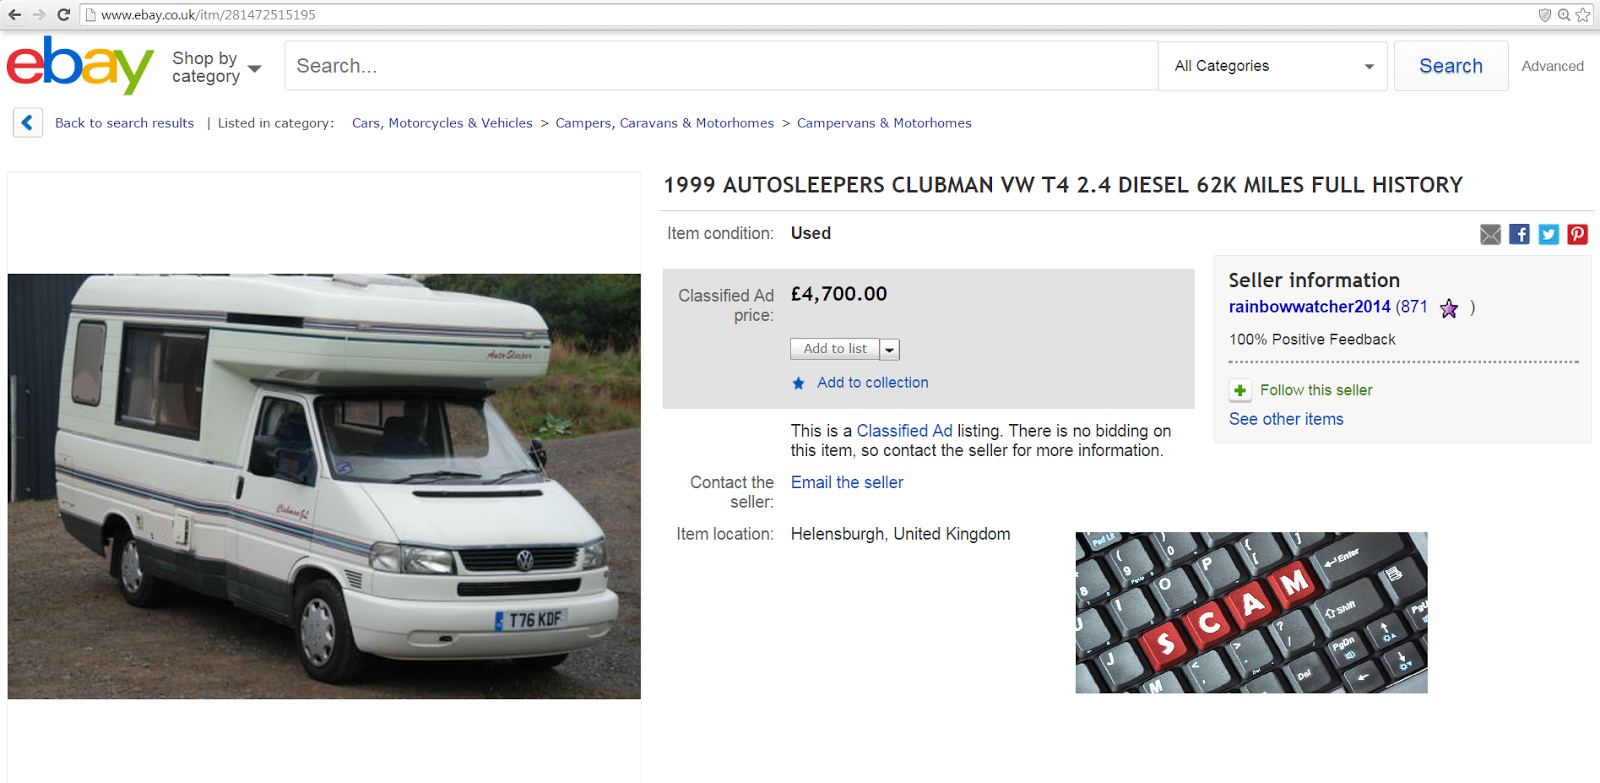 "Auto Sleepers For Sale On Ebay: SCAM 1999 AUTOSLEEPERS CLUBMAN VW T4 Motorhome ""T76KDF"